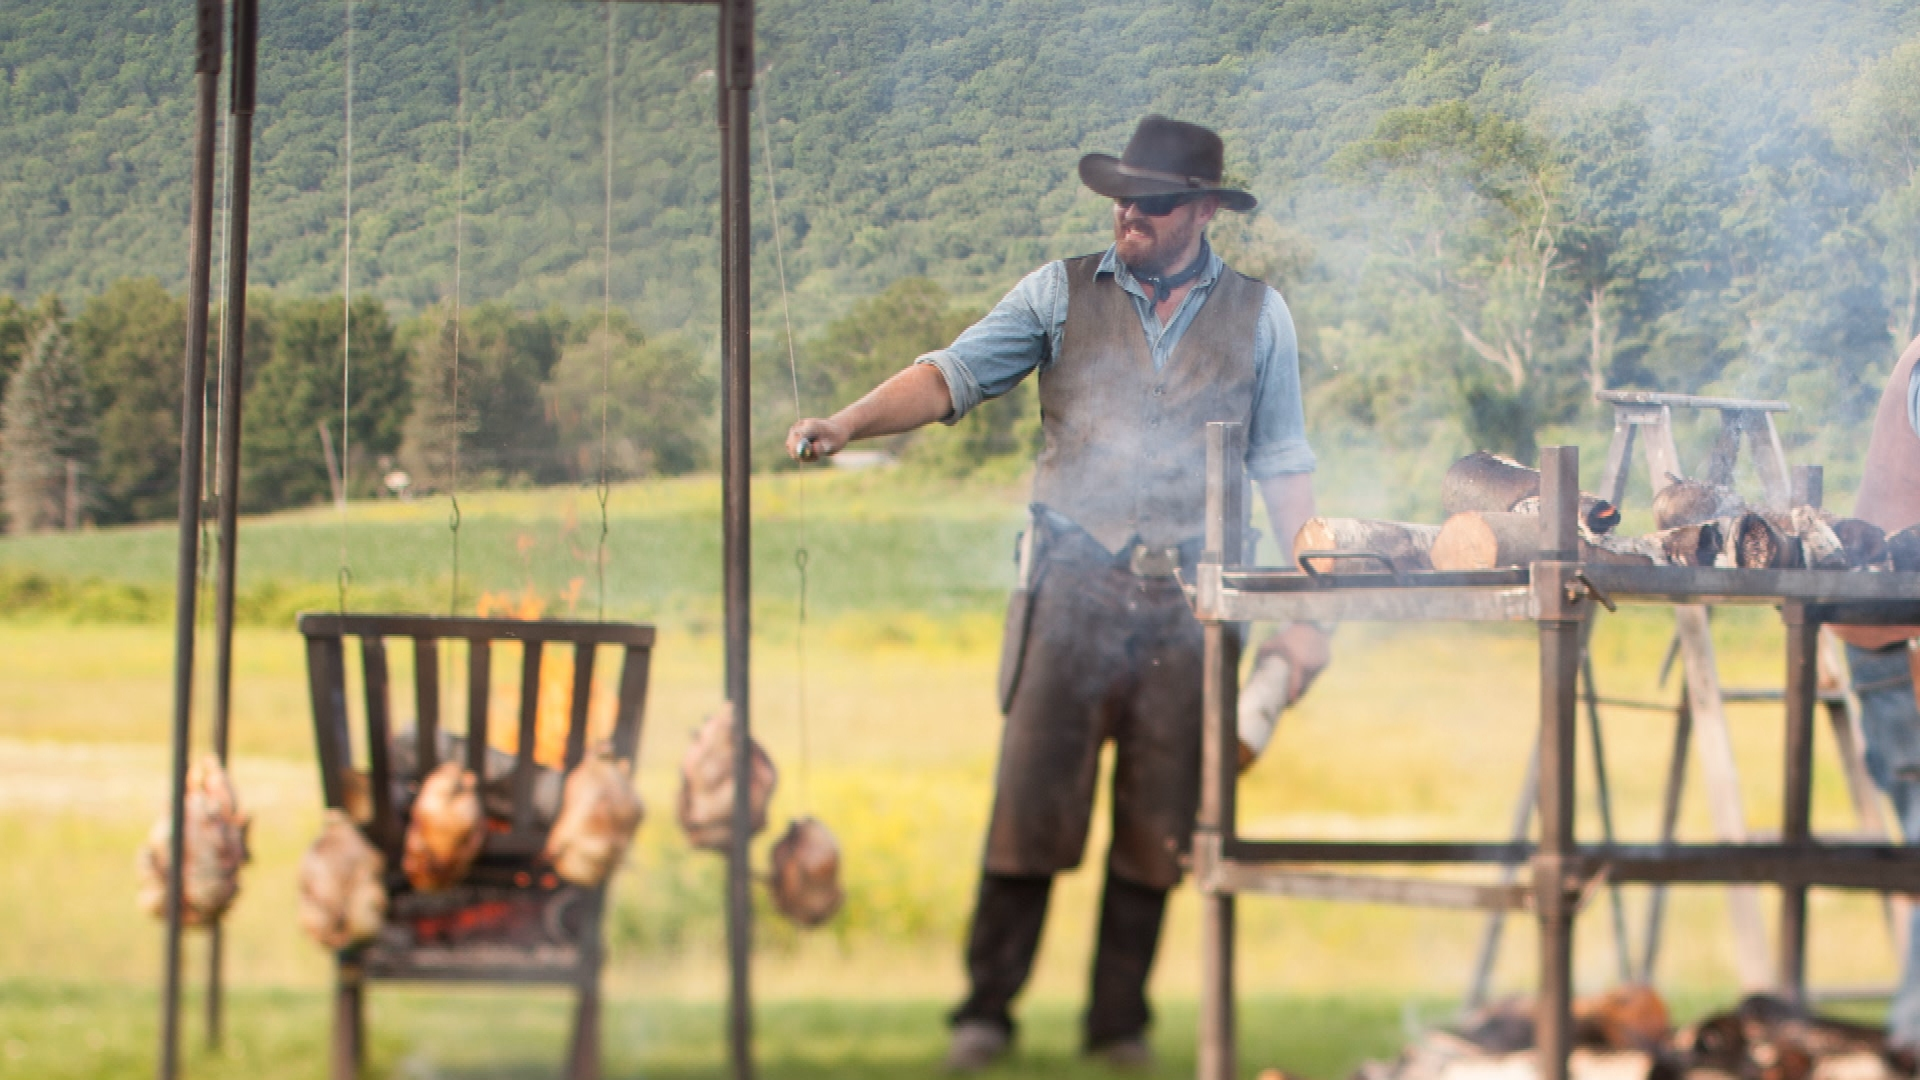 Knifemaker Jim Gop crafts his cooking knives in his Richmond, MA forge.